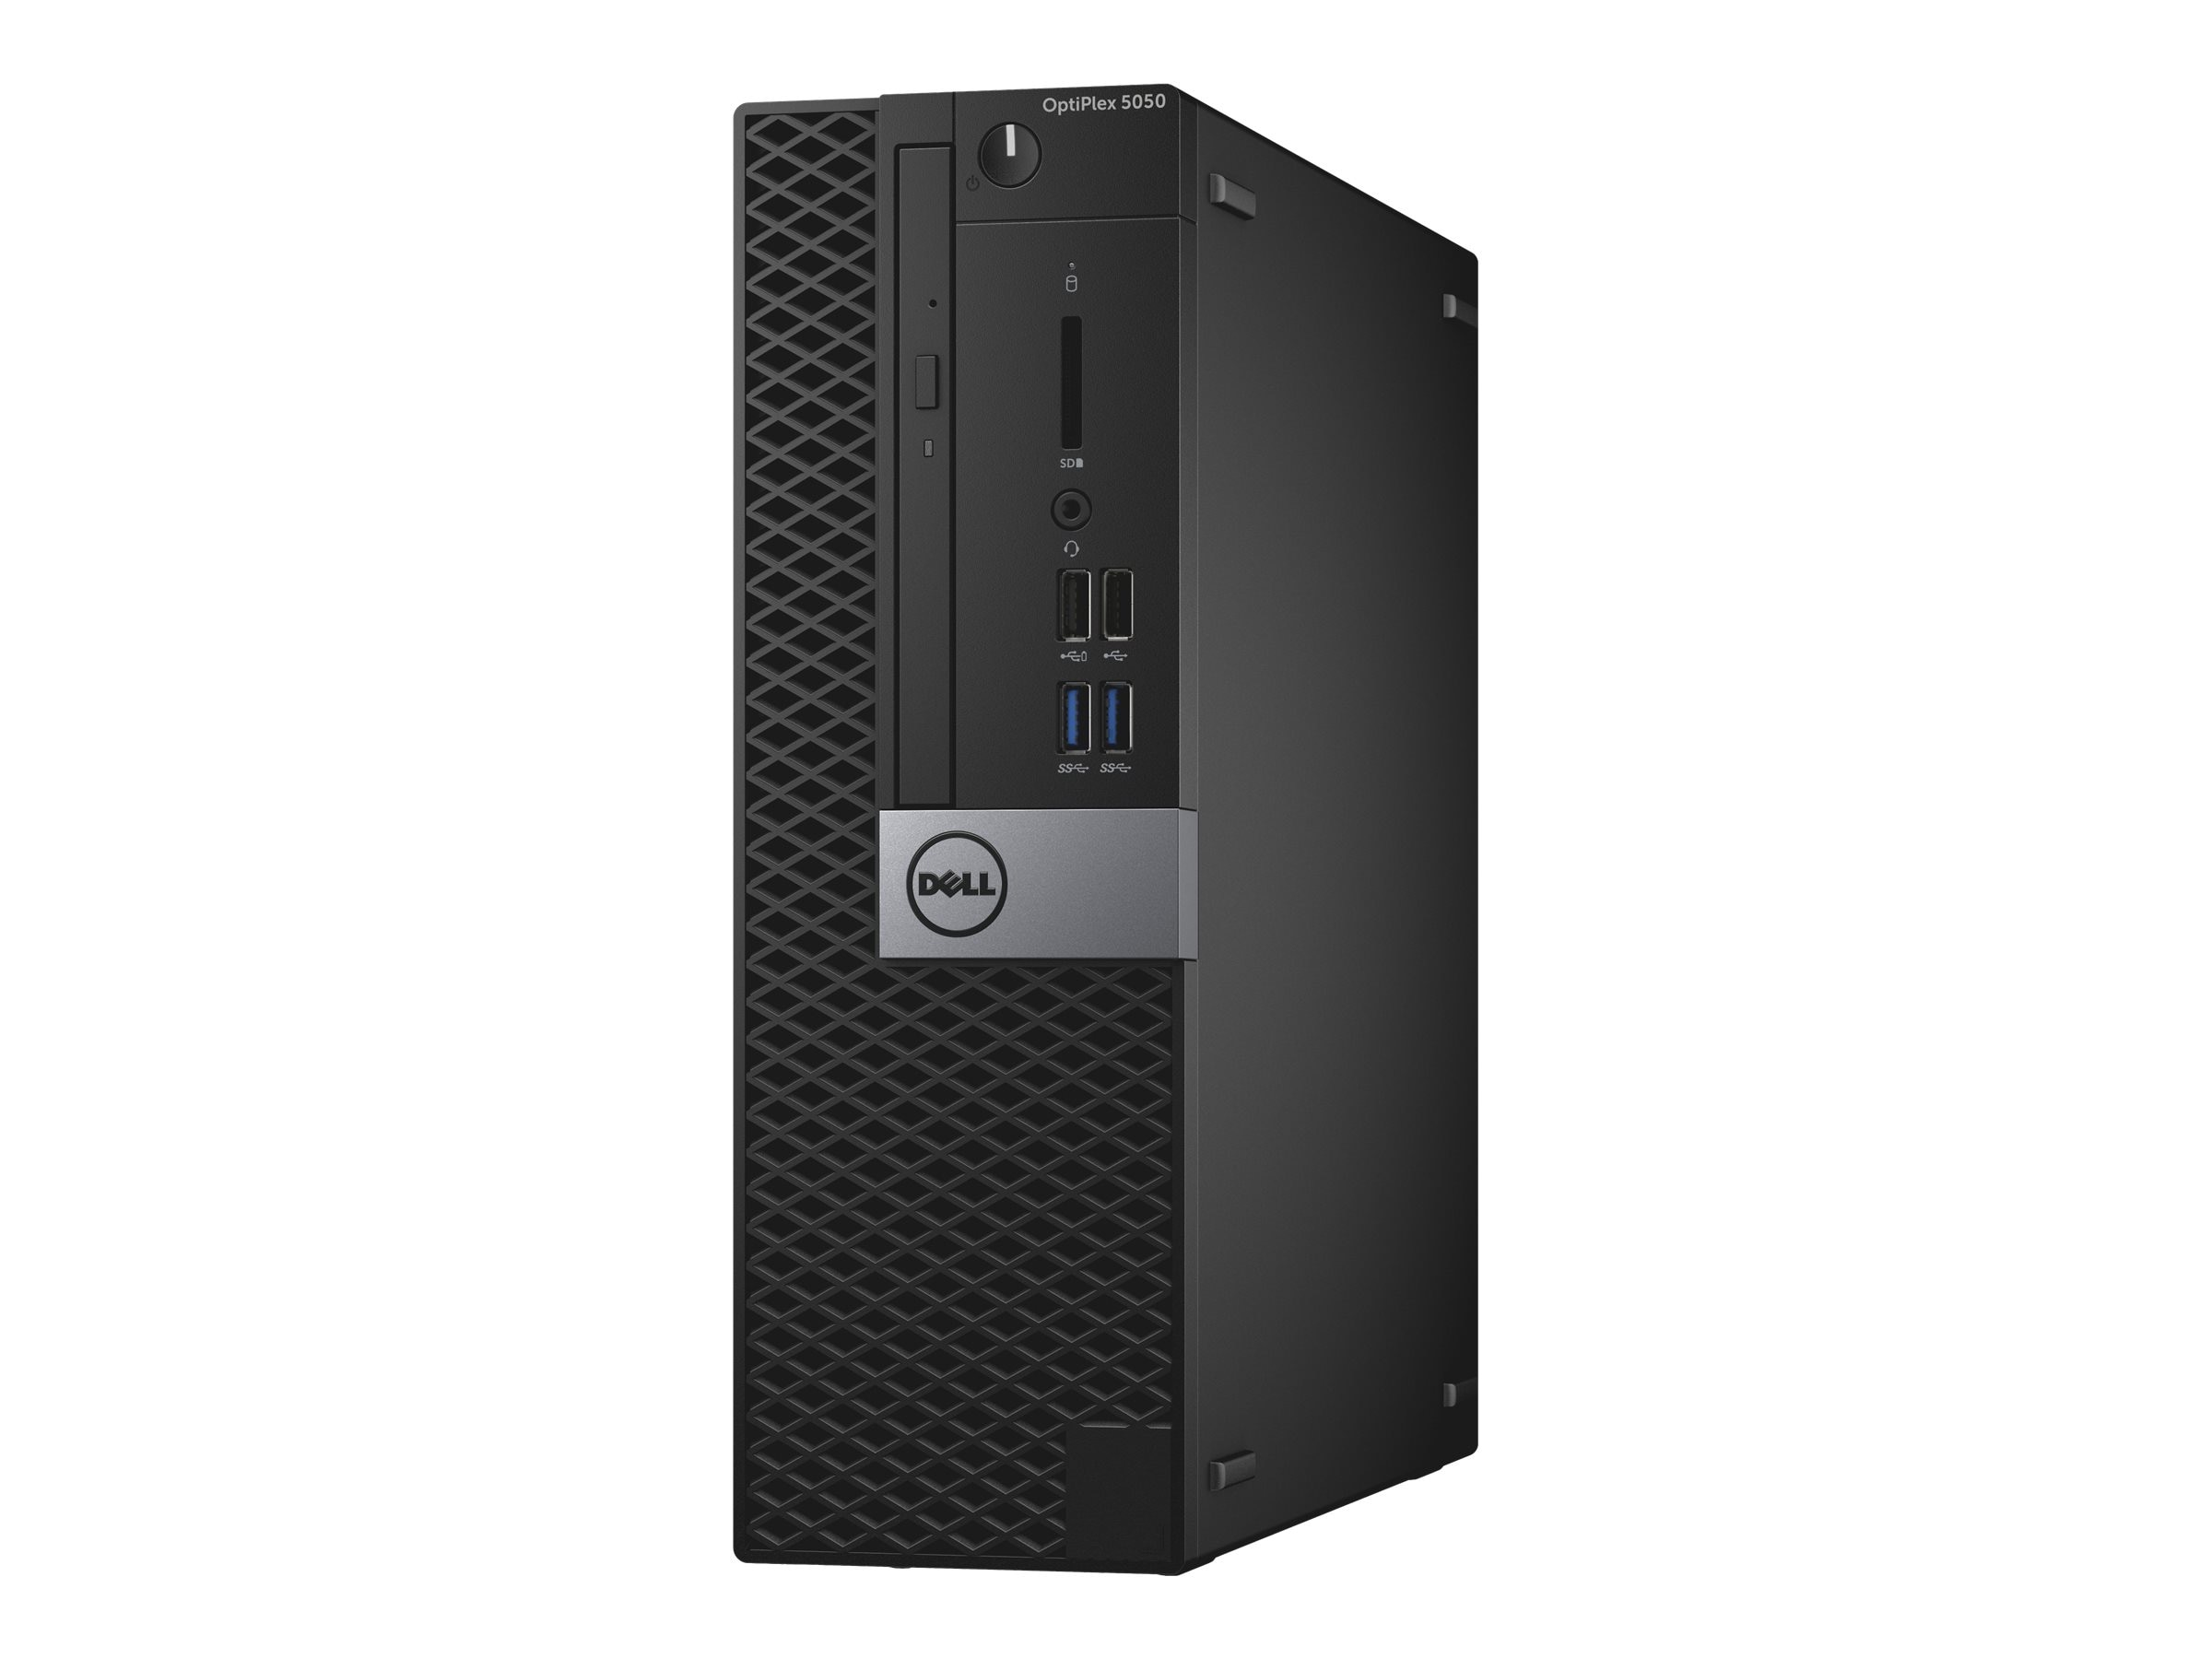 Dell YMYT2 Image 1